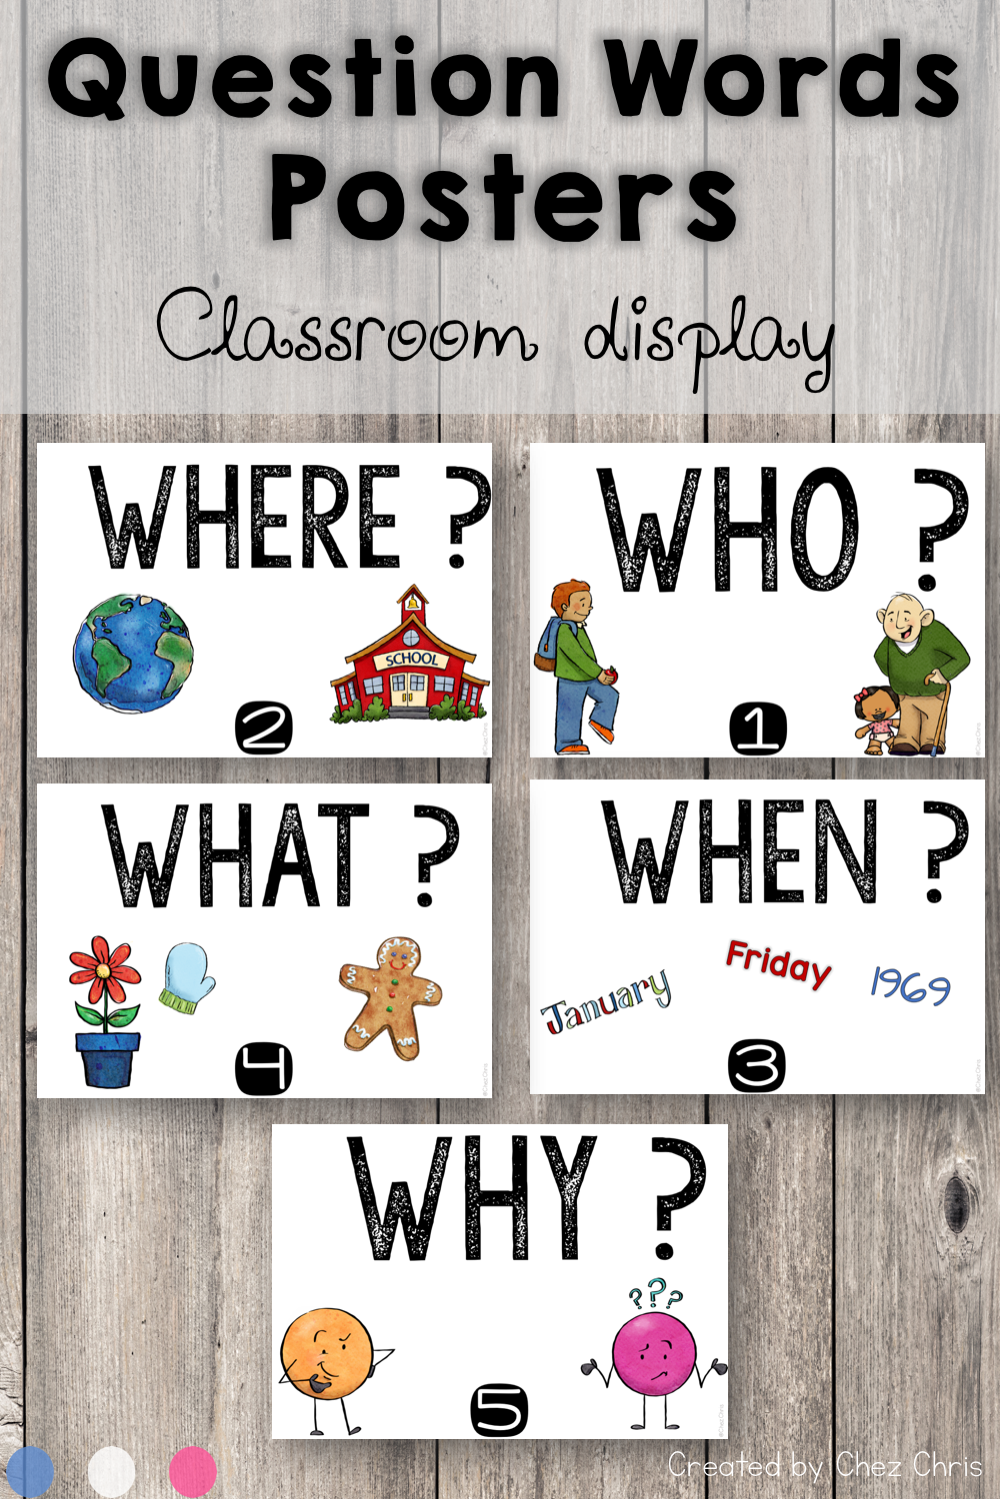 Question Words Posters For Your Classroom Display These Posters In Your Classroom To Help Your Stu This Or That Questions Word Poster Esl Teaching Resources